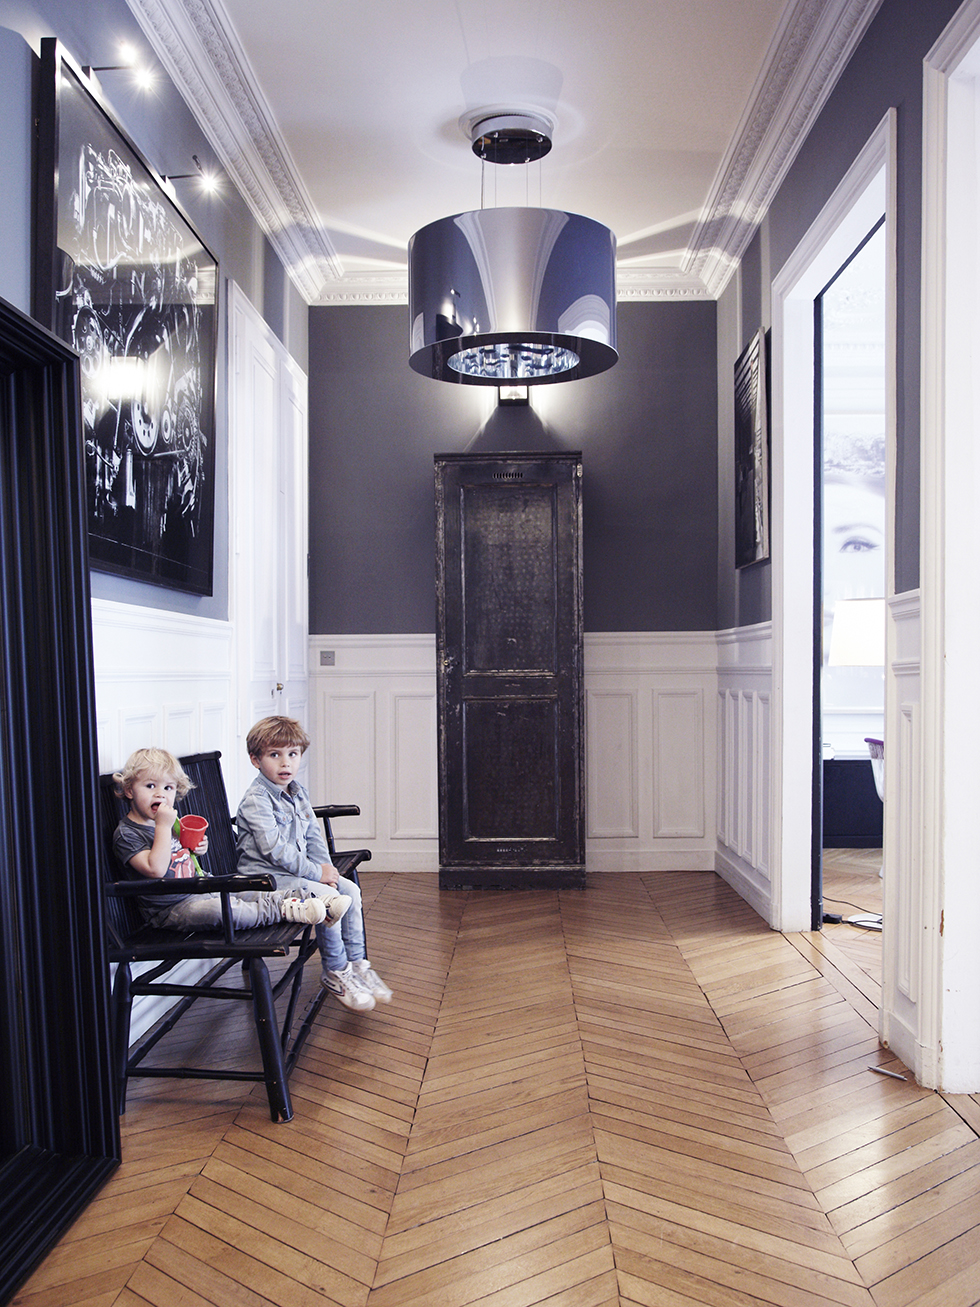 Un int rieur parisien so chic frenchy fancy for Decoration interieur haussmannien